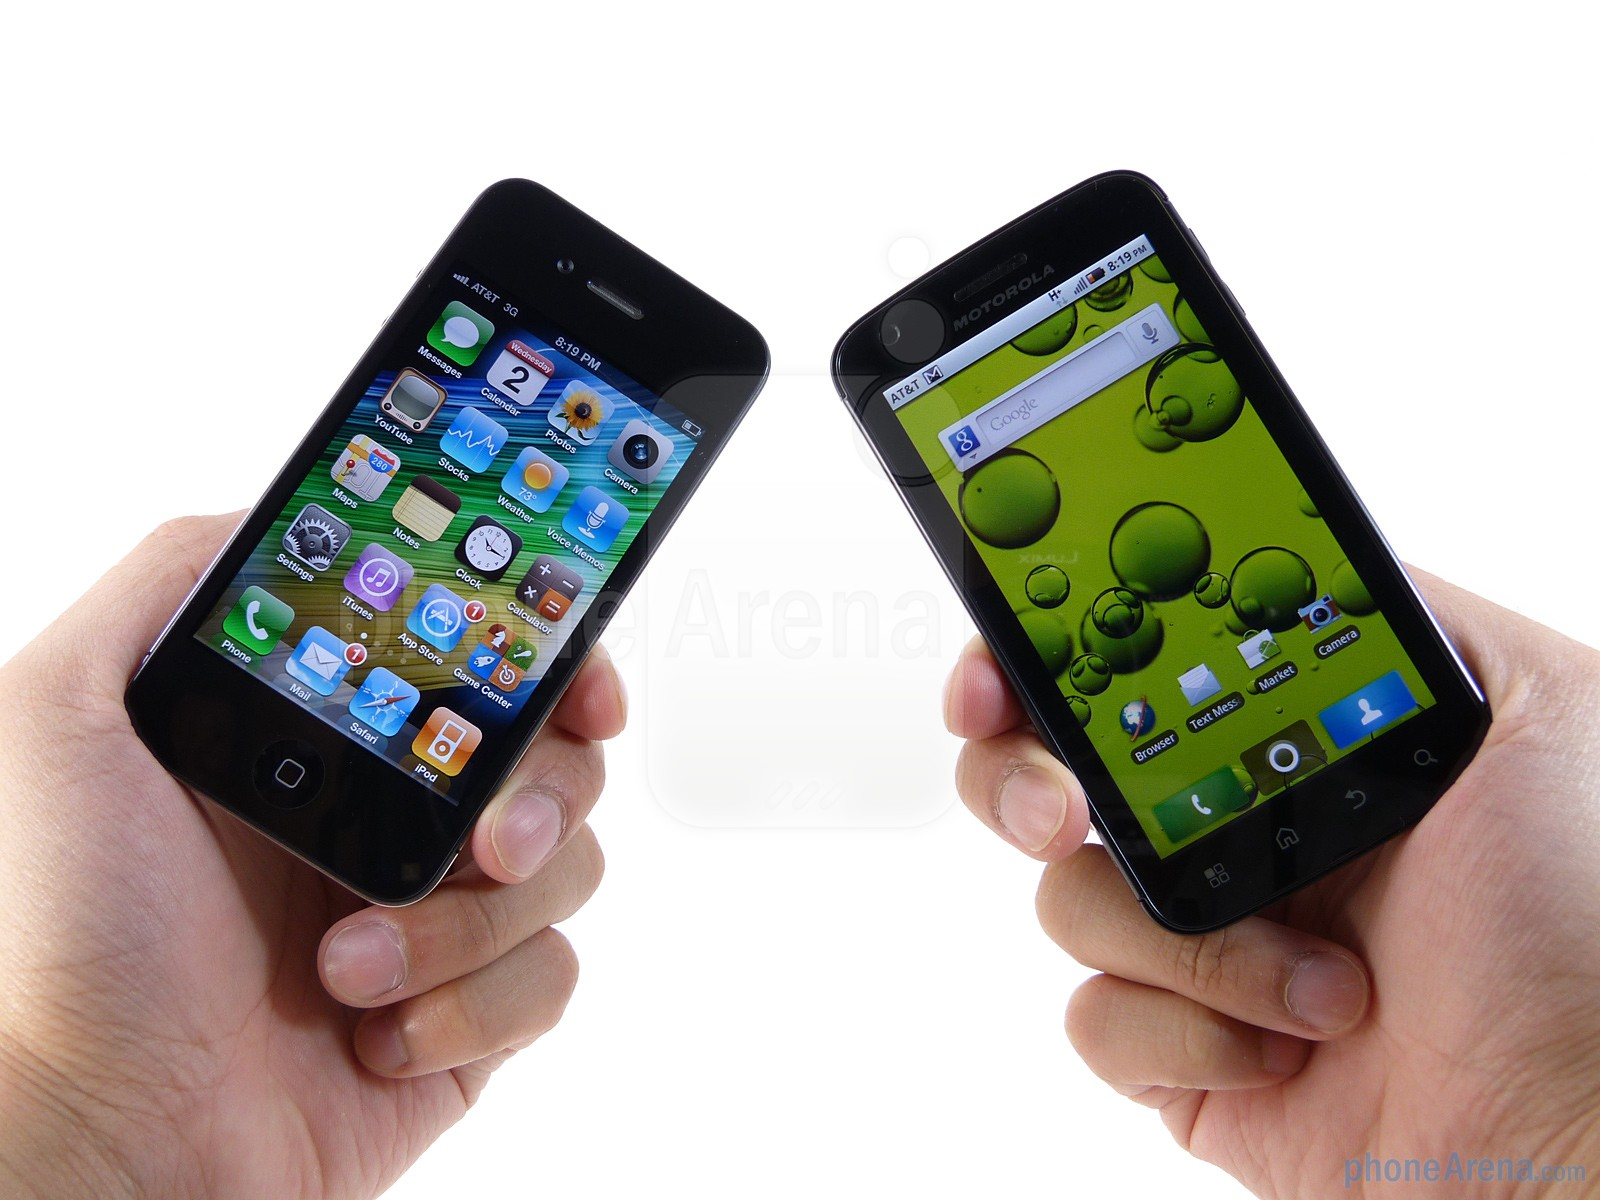 Camera Iphone Or Android Phone whats better iphone or android electronics biz vs photo from phonarea dot com